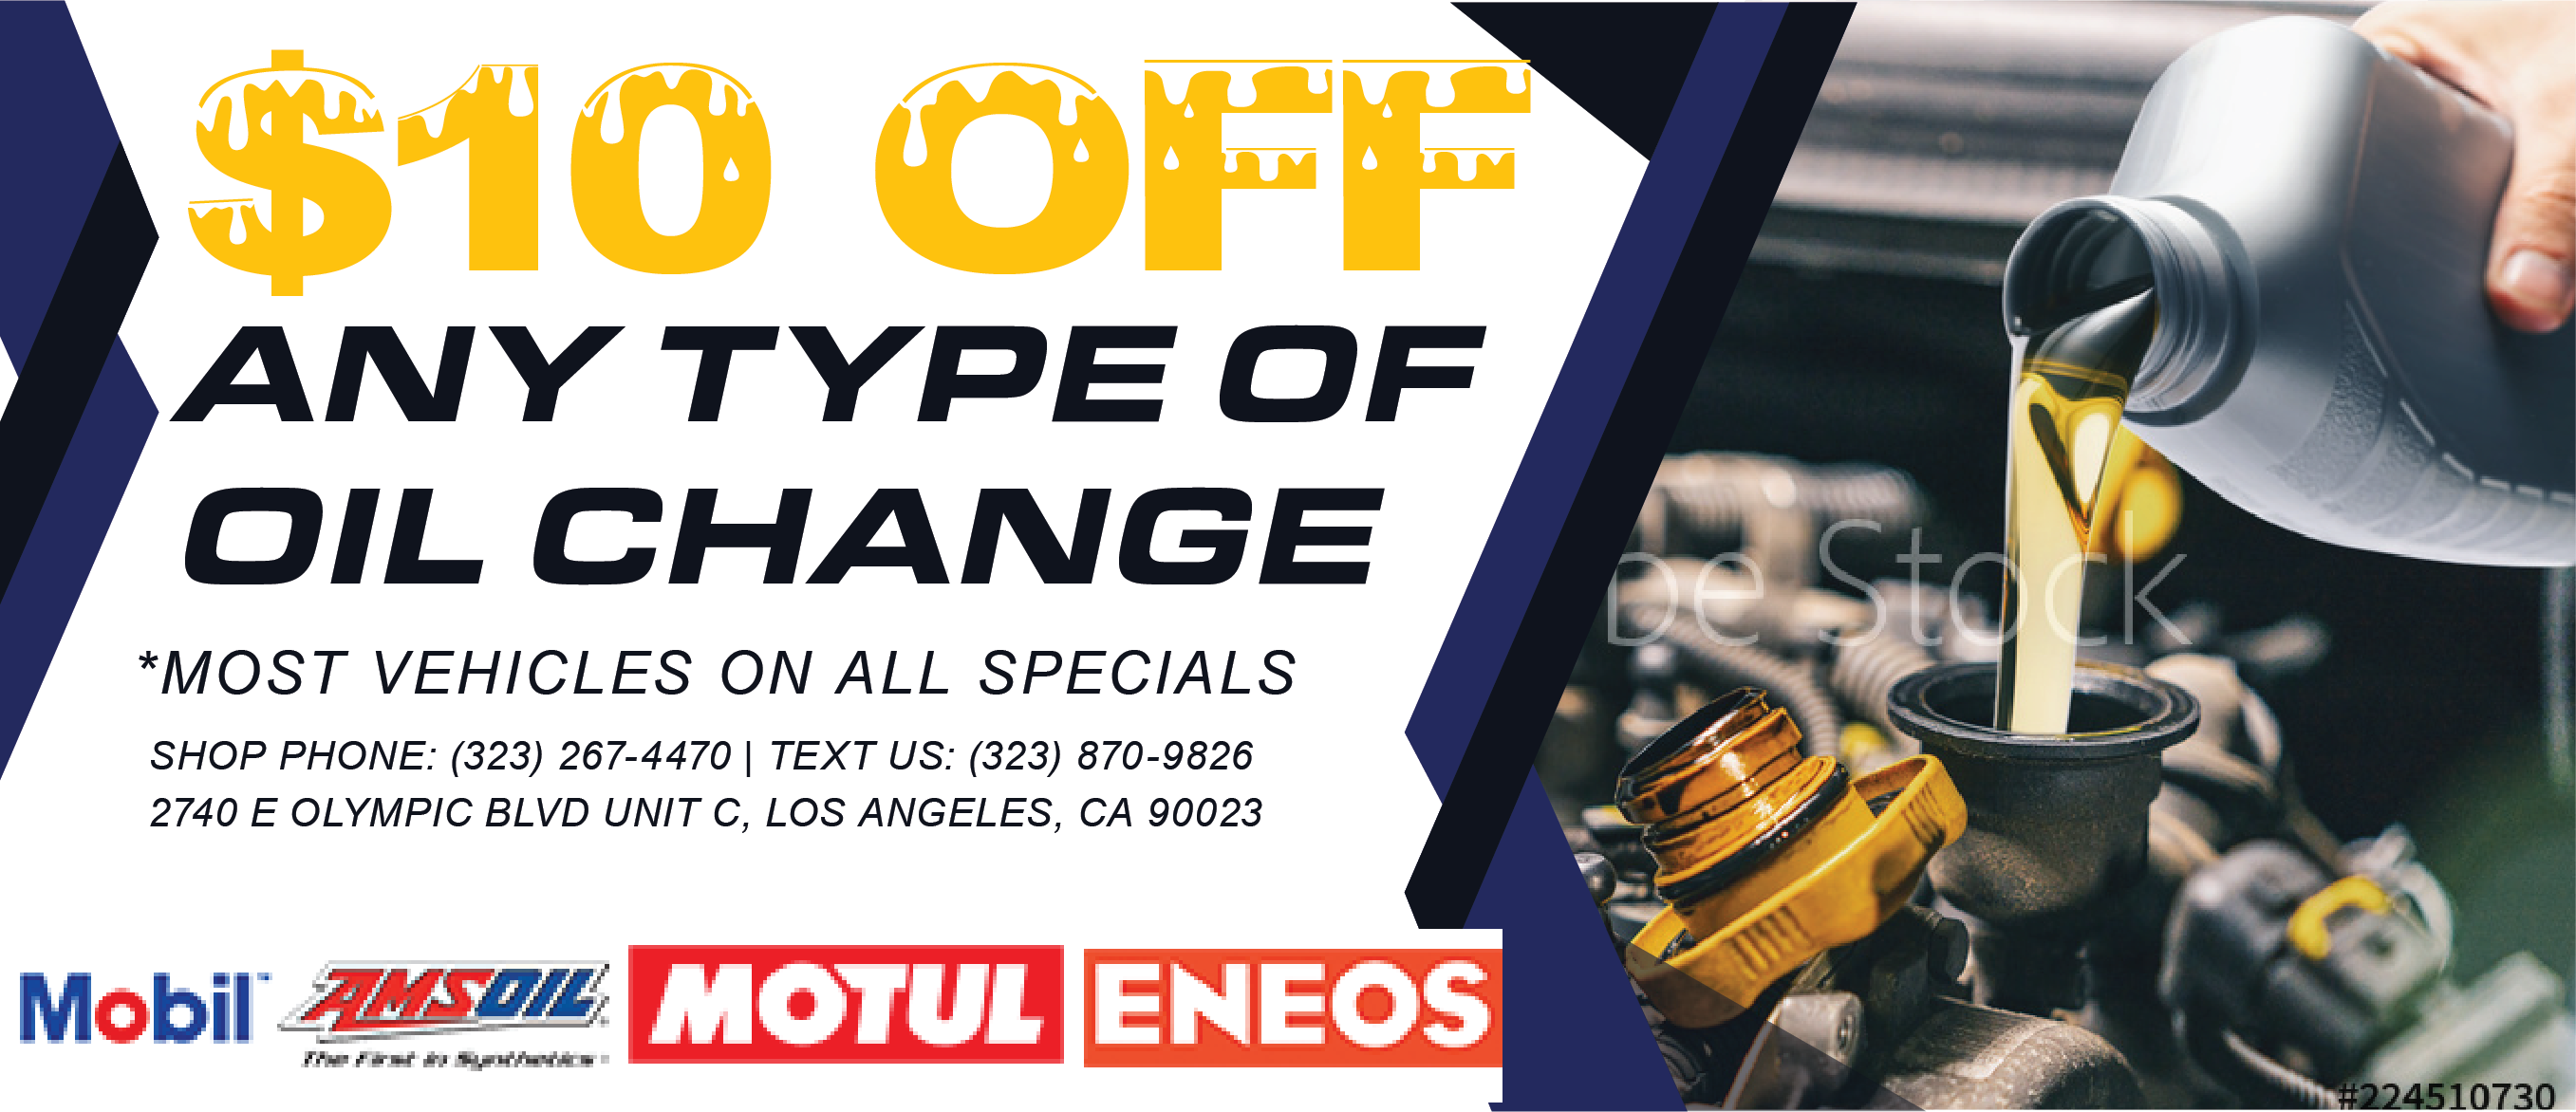 Oil Change Downtown Los Angeles